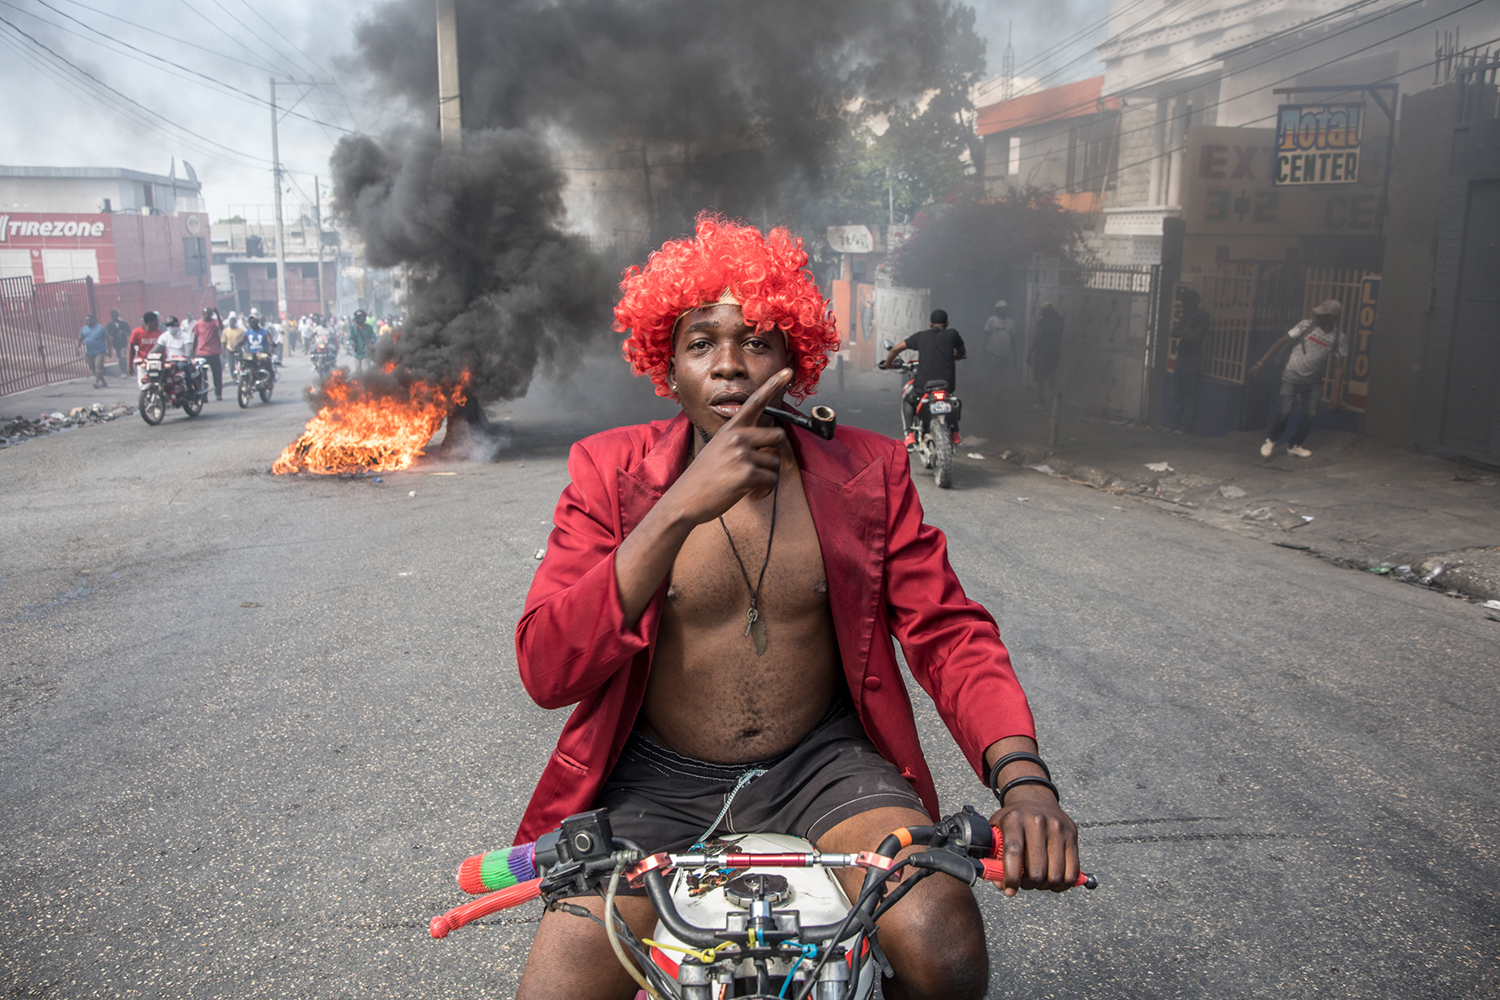 Demonstrators march in Port-au-Prince, Haiti, on Feb. 14 to protest against the government of President Jovenel Moise. VALERIE BAERISWYL/AFP via Getty Images